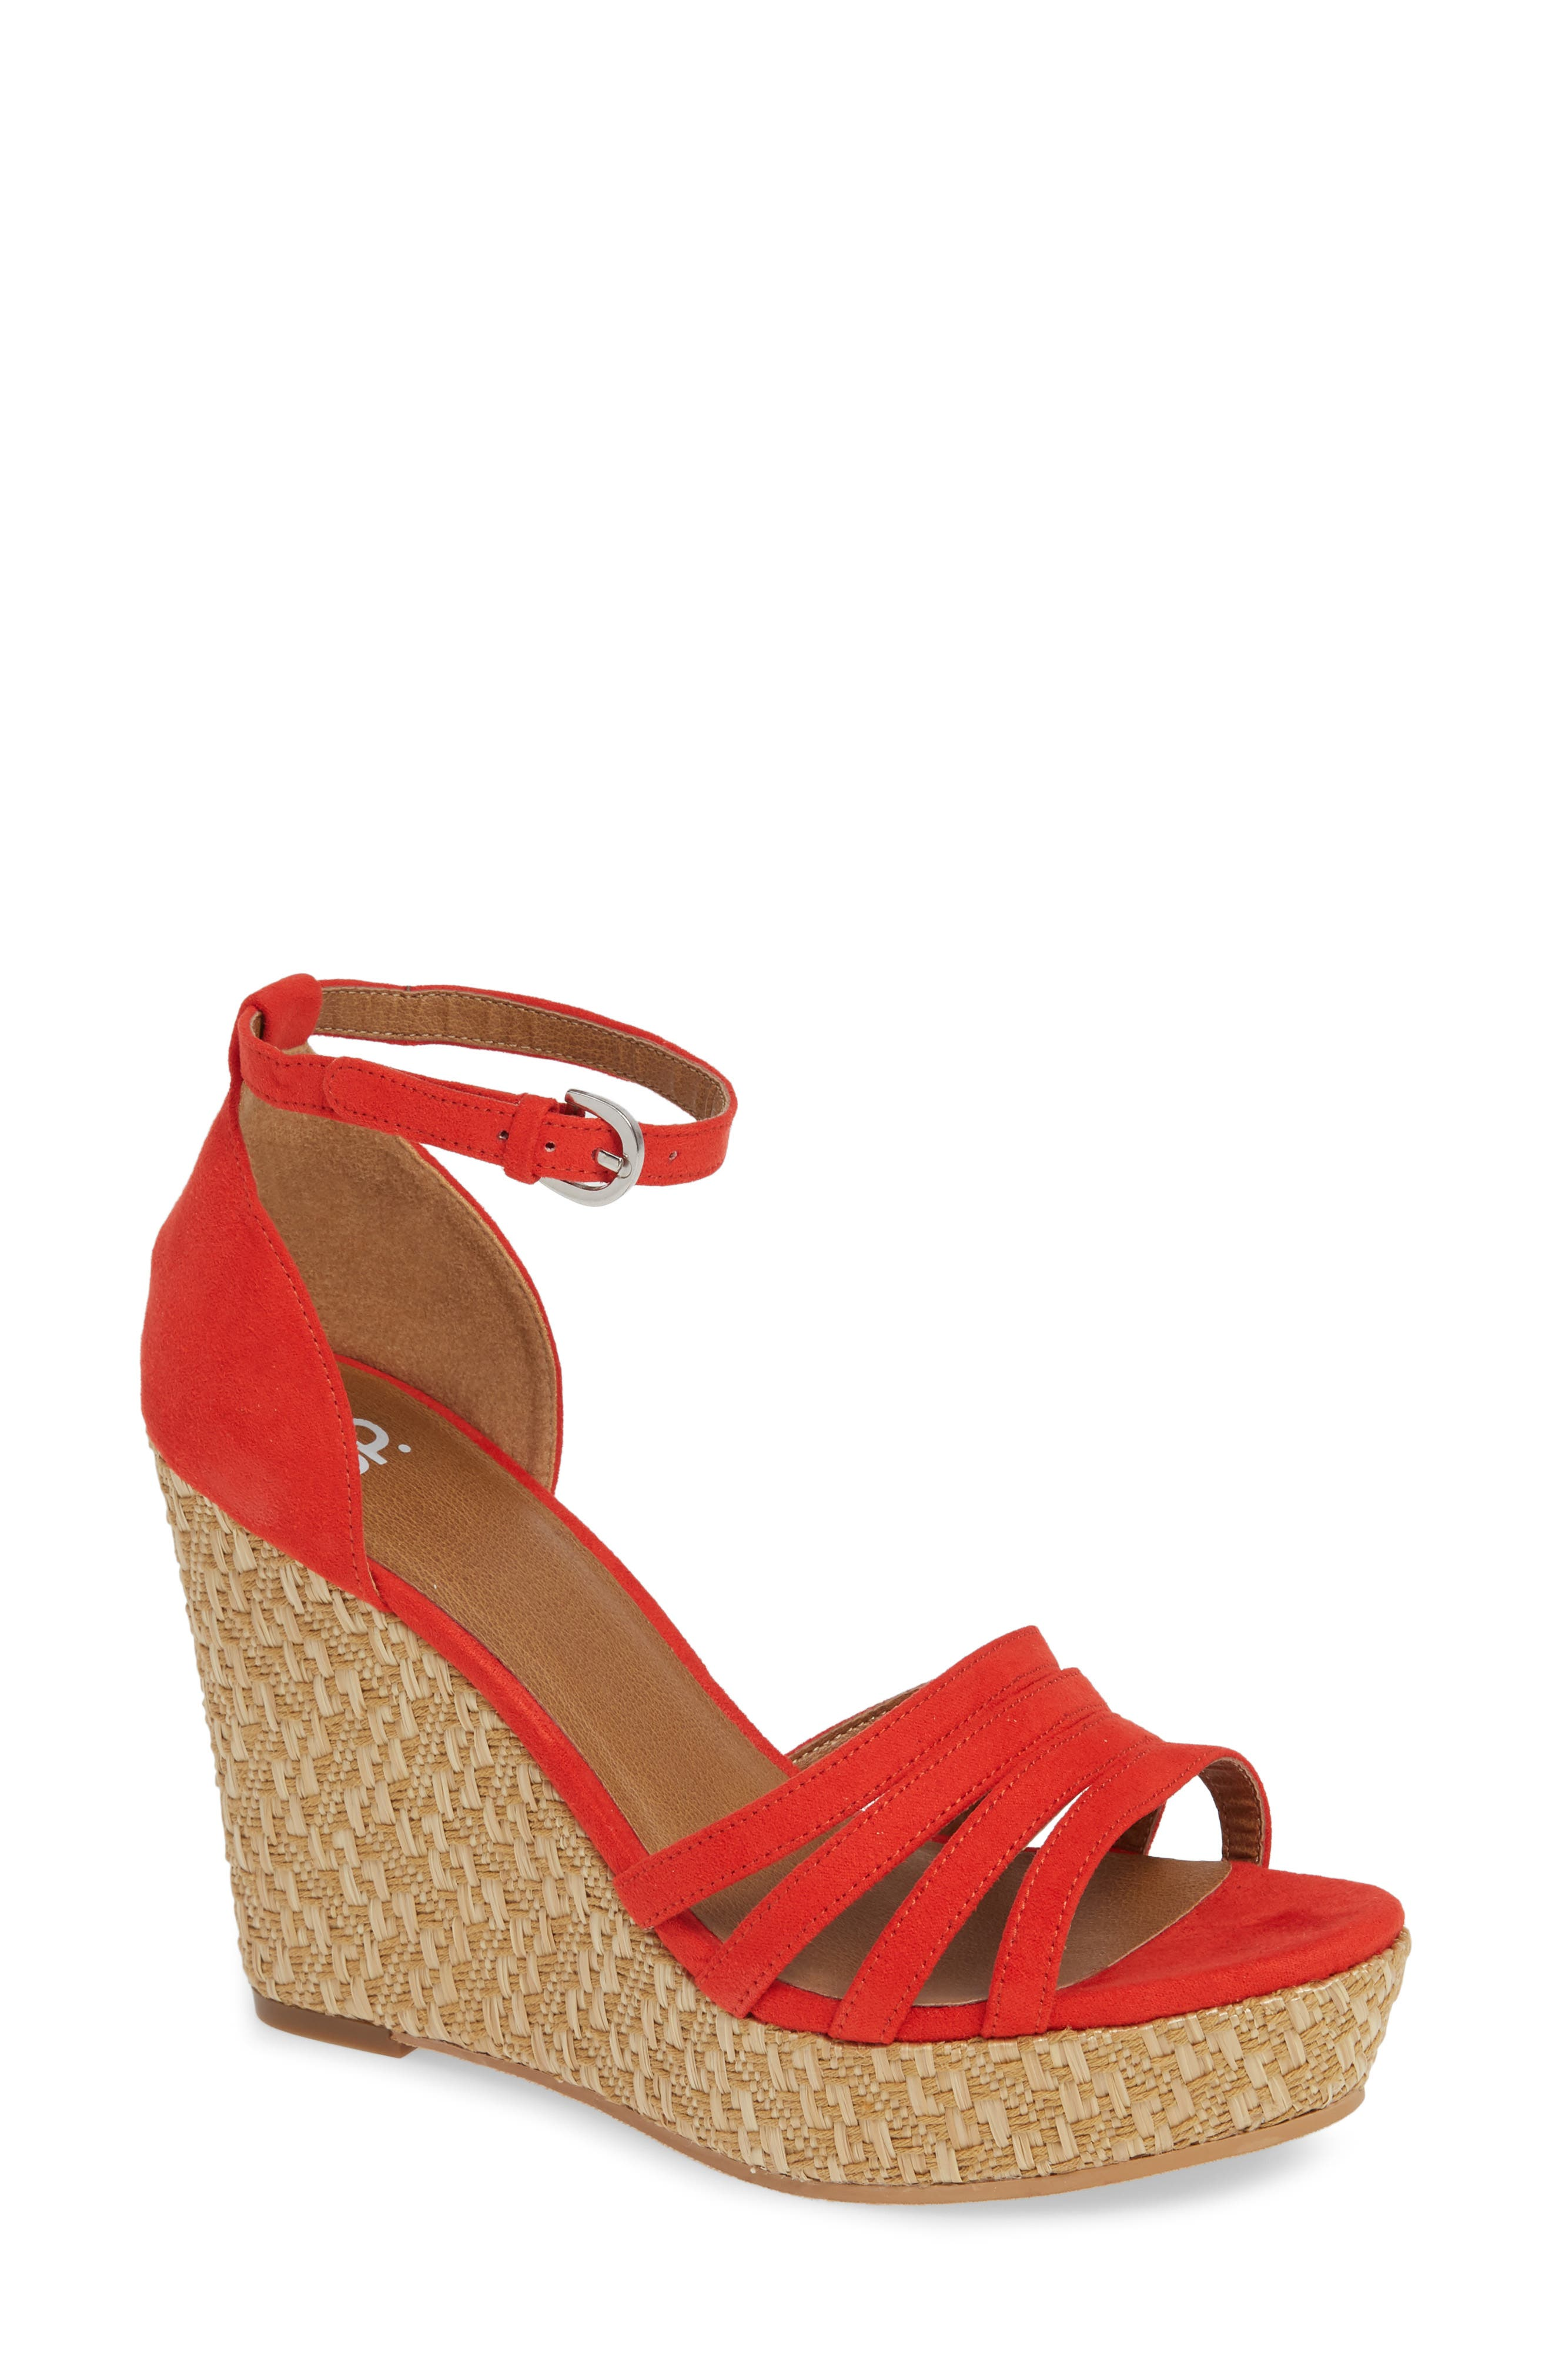 Scarlette Wedge Sandal,                             Main thumbnail 1, color,                             RED FAUX SUEDE